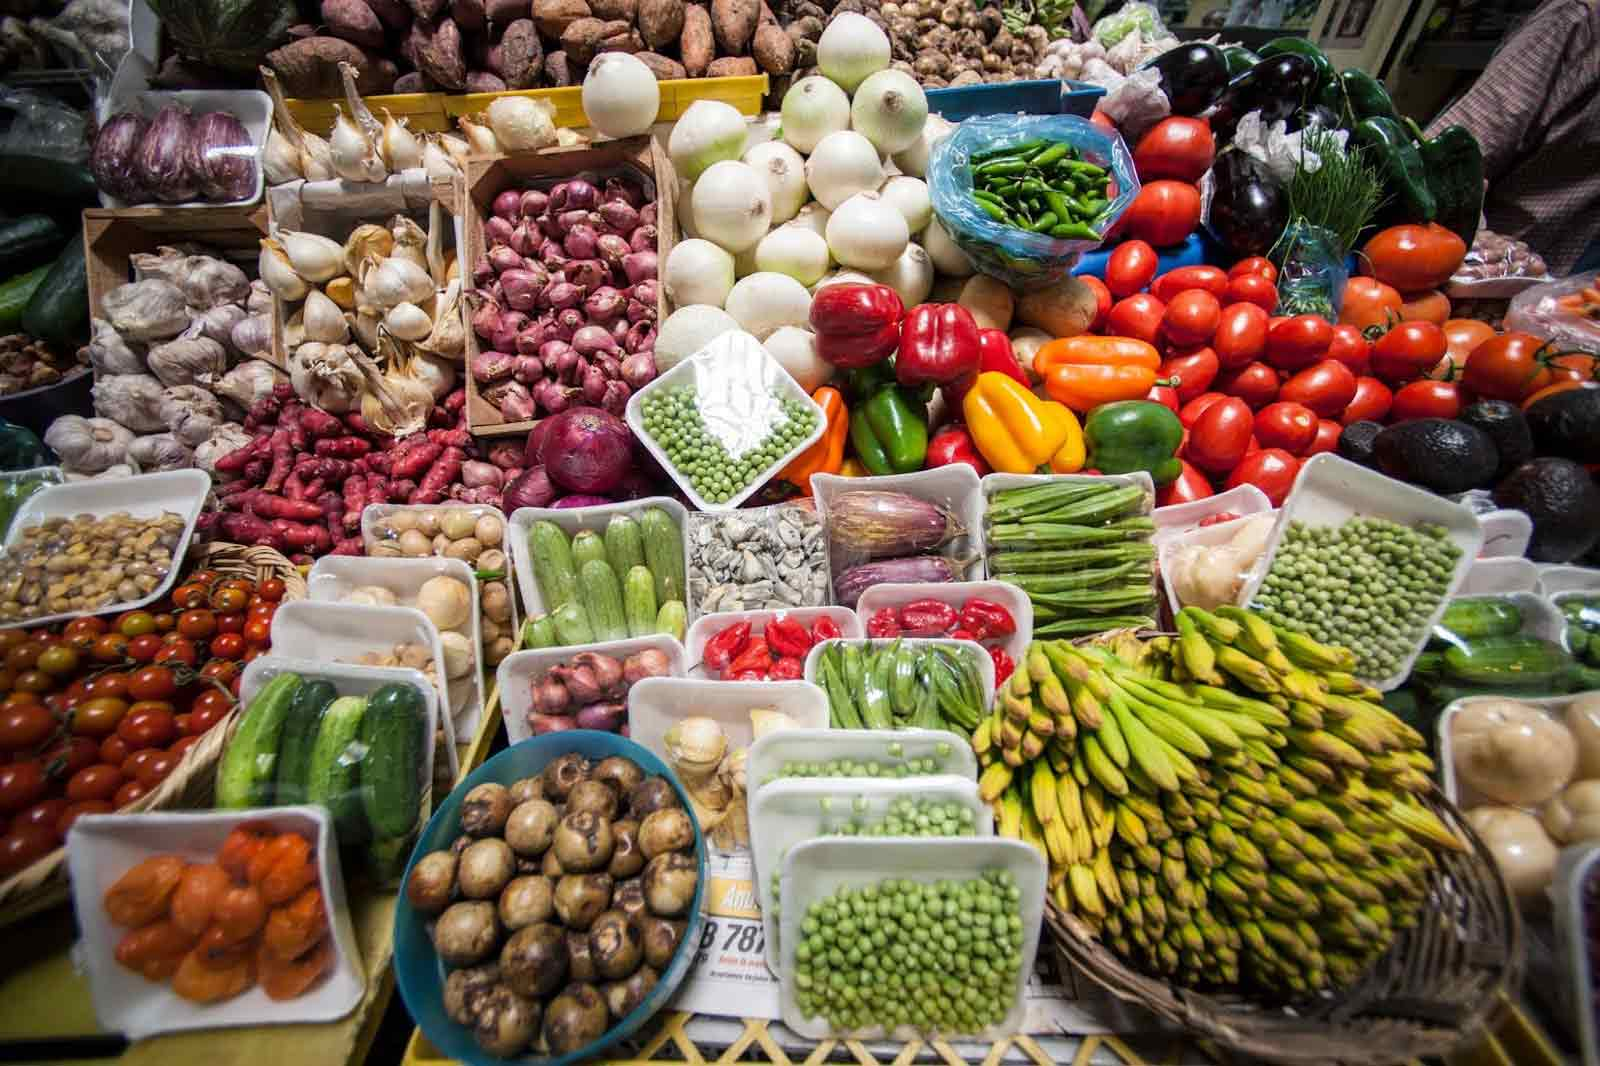 5 traditional markets in Mexico to have the best food